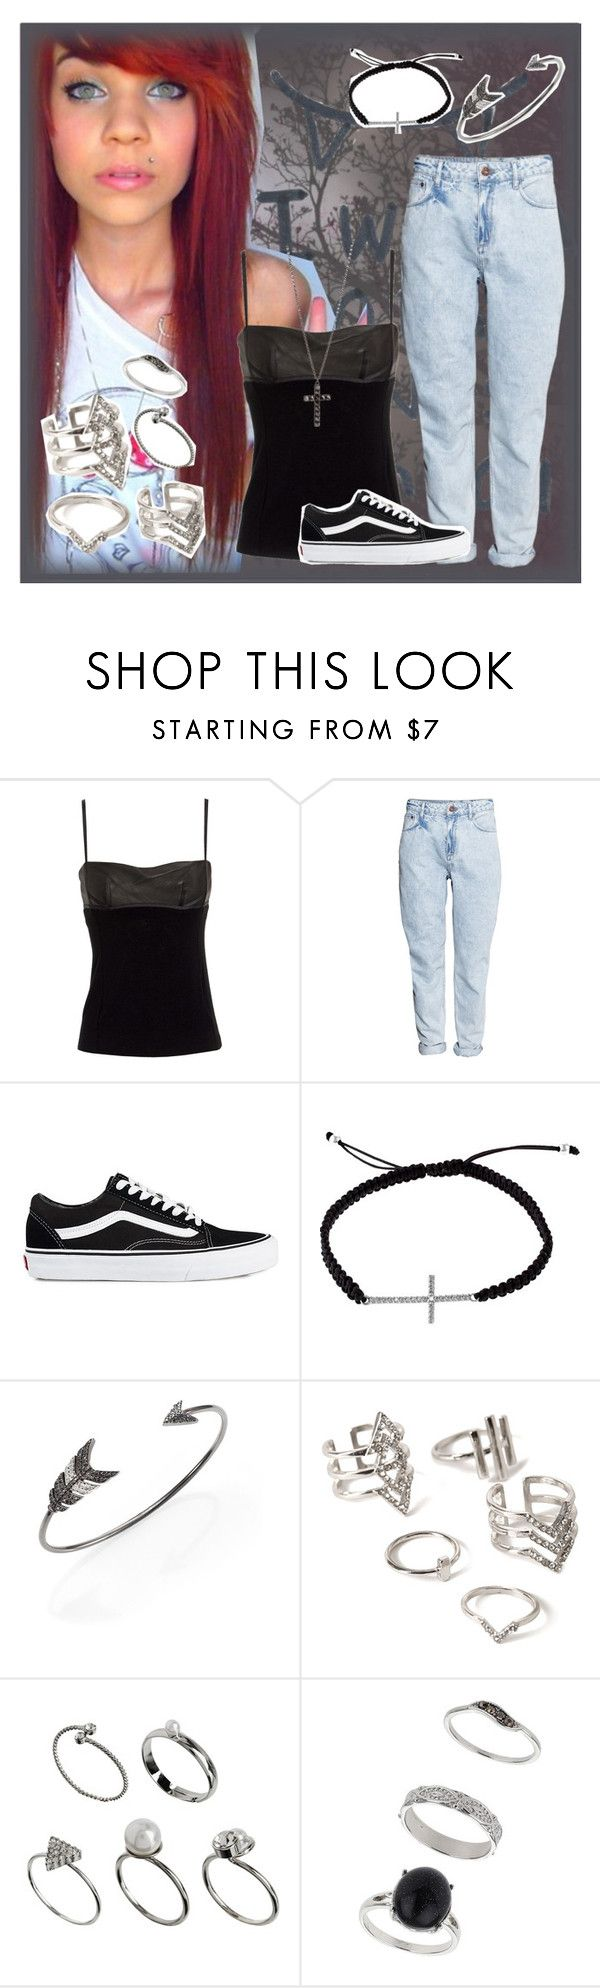 """""""Beautiful In Black"""" by andyrosexxx on Polyvore featuring Nicole, Alexander Wang, H&M, Vans, Divine Silver, Jade Jagger, Forever 21, ASOS and Miss Selfridge"""